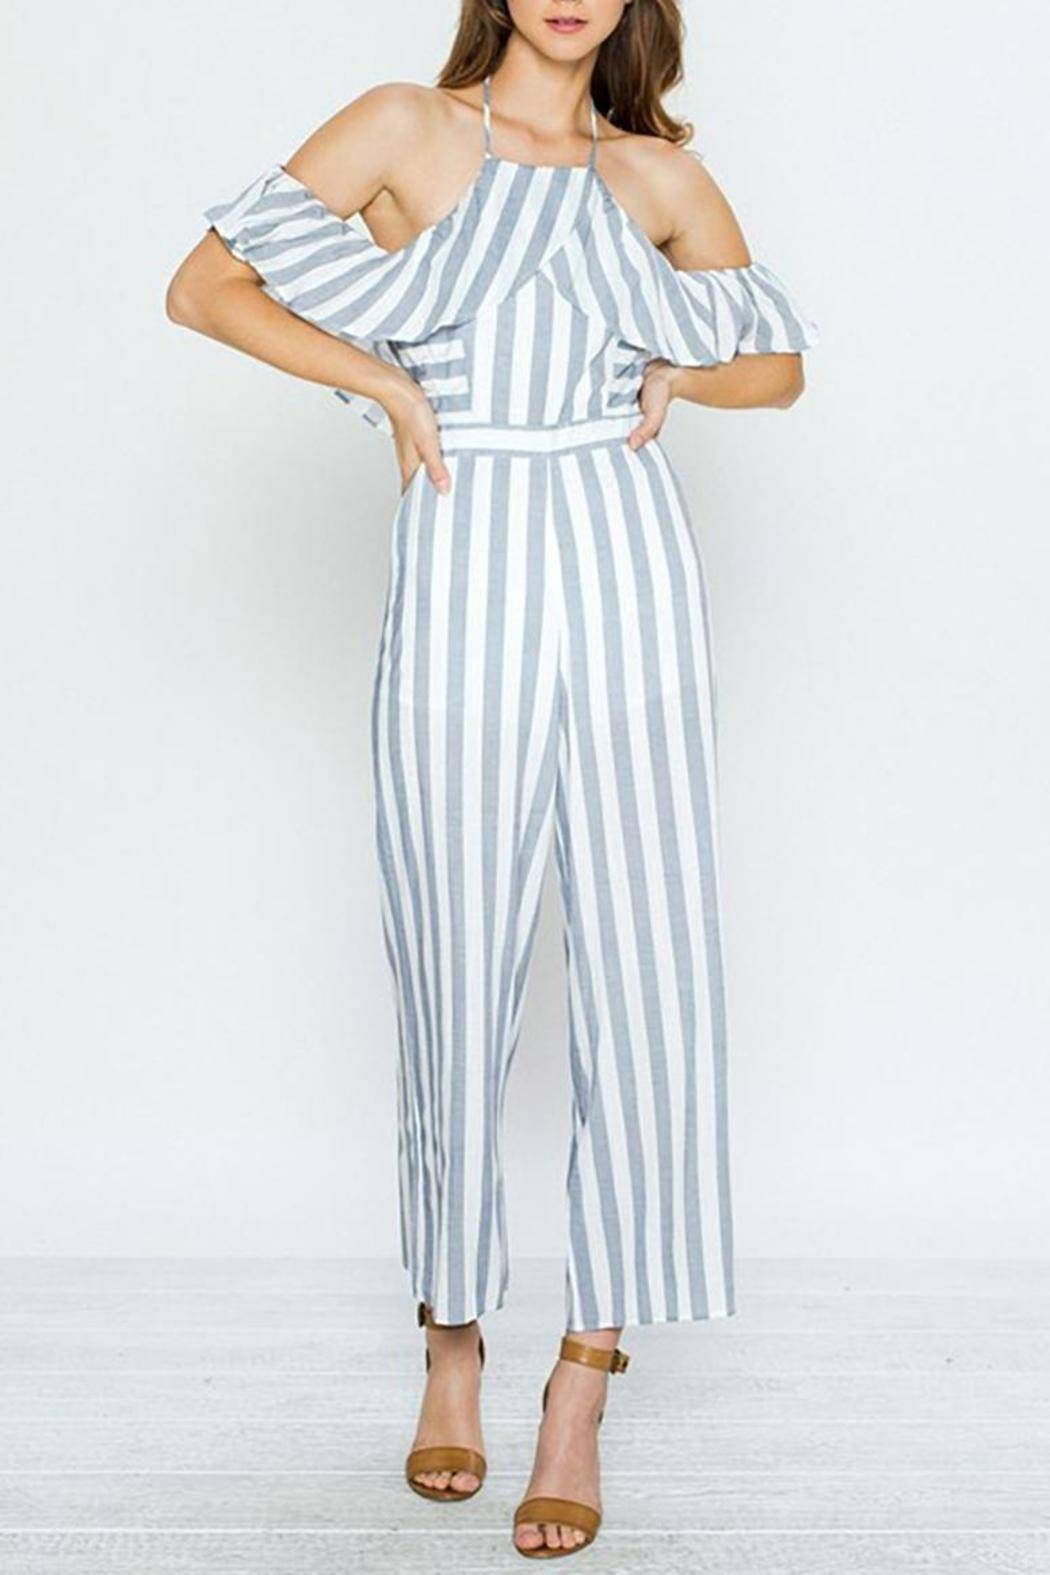 768bb7f326d24 Adjustable tie straps around neck. The jumpsuit is lined. Striped Ruffle  Jumpsuit by Jealous Tomato. Clothing - Jumpsuits & Rompers - Jumpsuits  Virginia